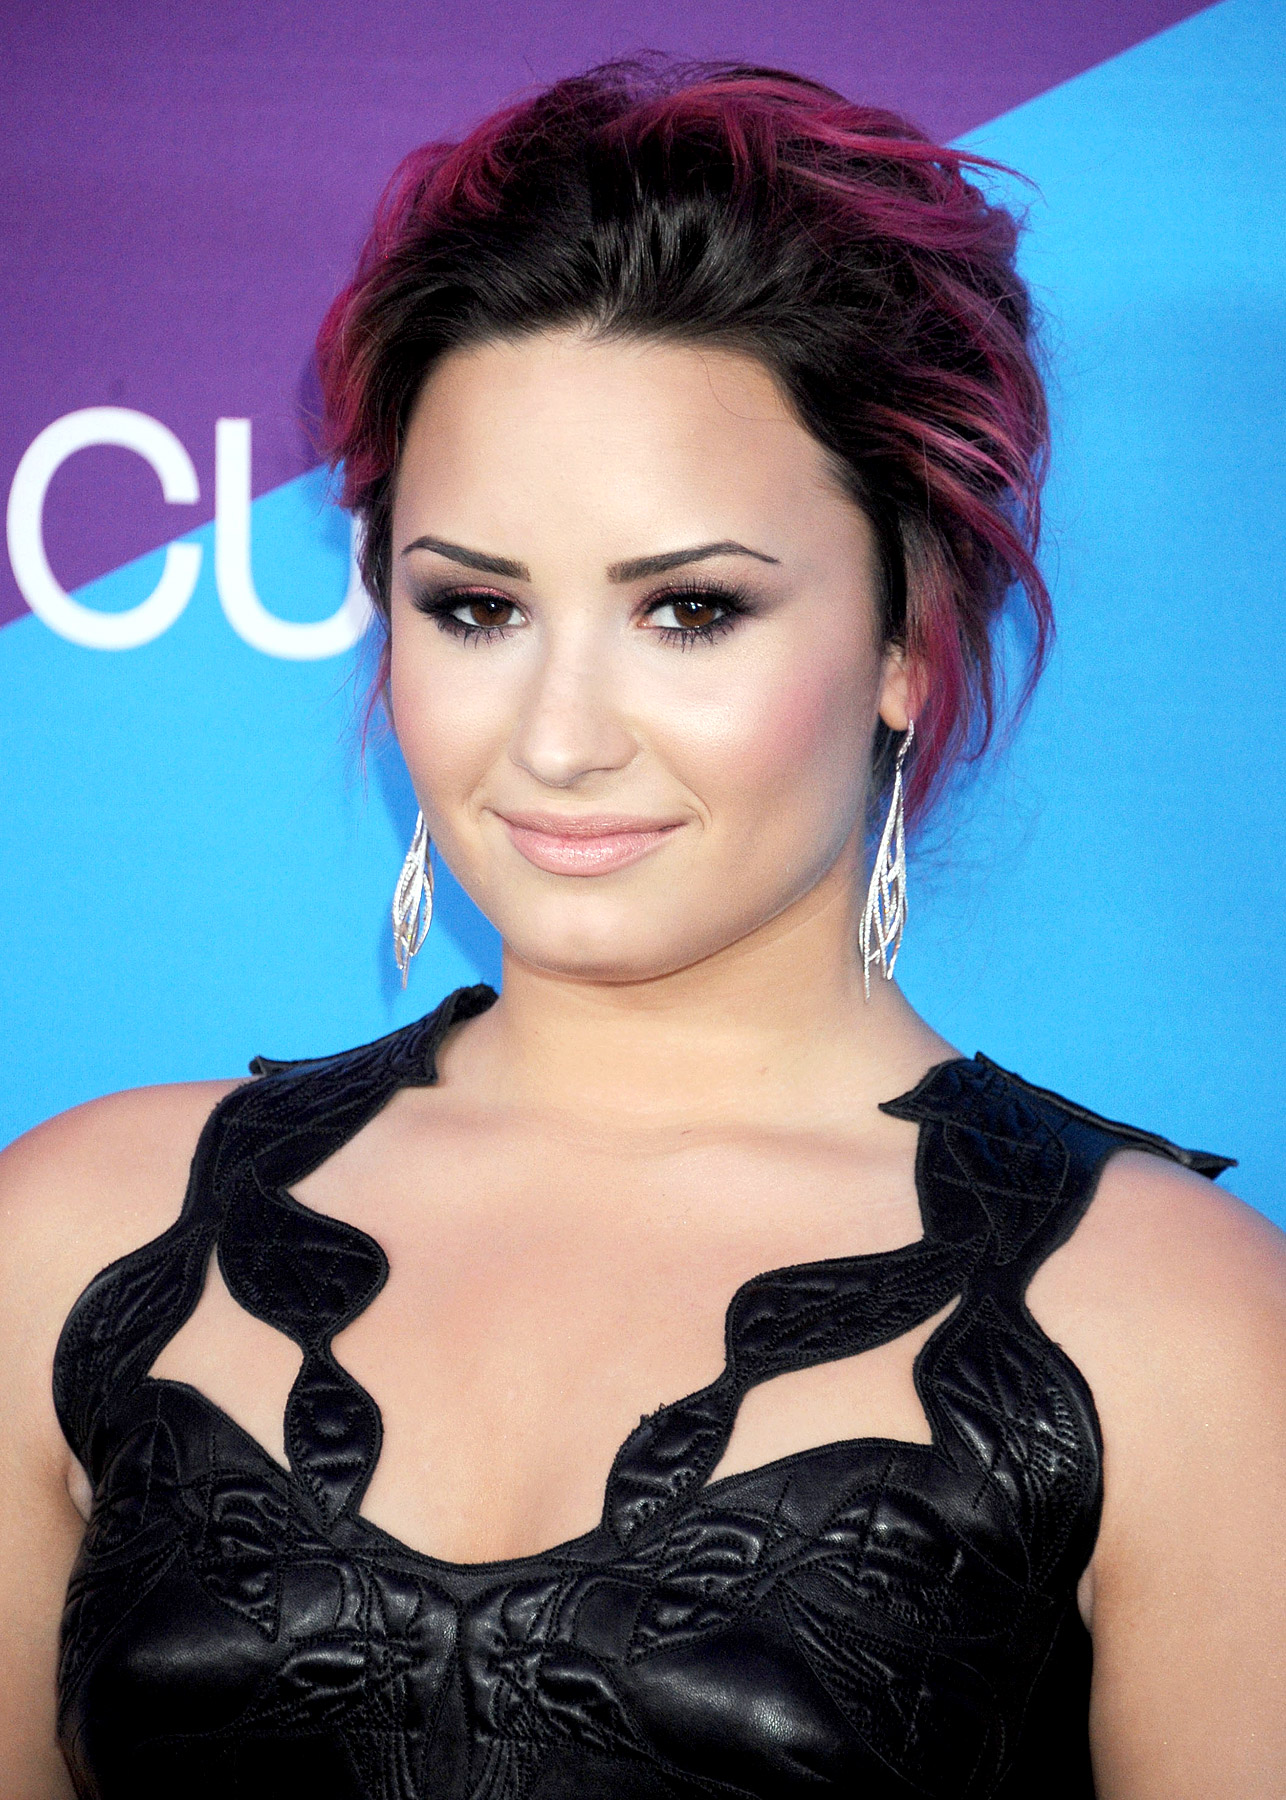 After a troubling stint in rehab, former Disney star Demi Lovato devoted her life and career to being a positive role model for young women. Much of that has entailed her being overly honest about her past substance abuse.